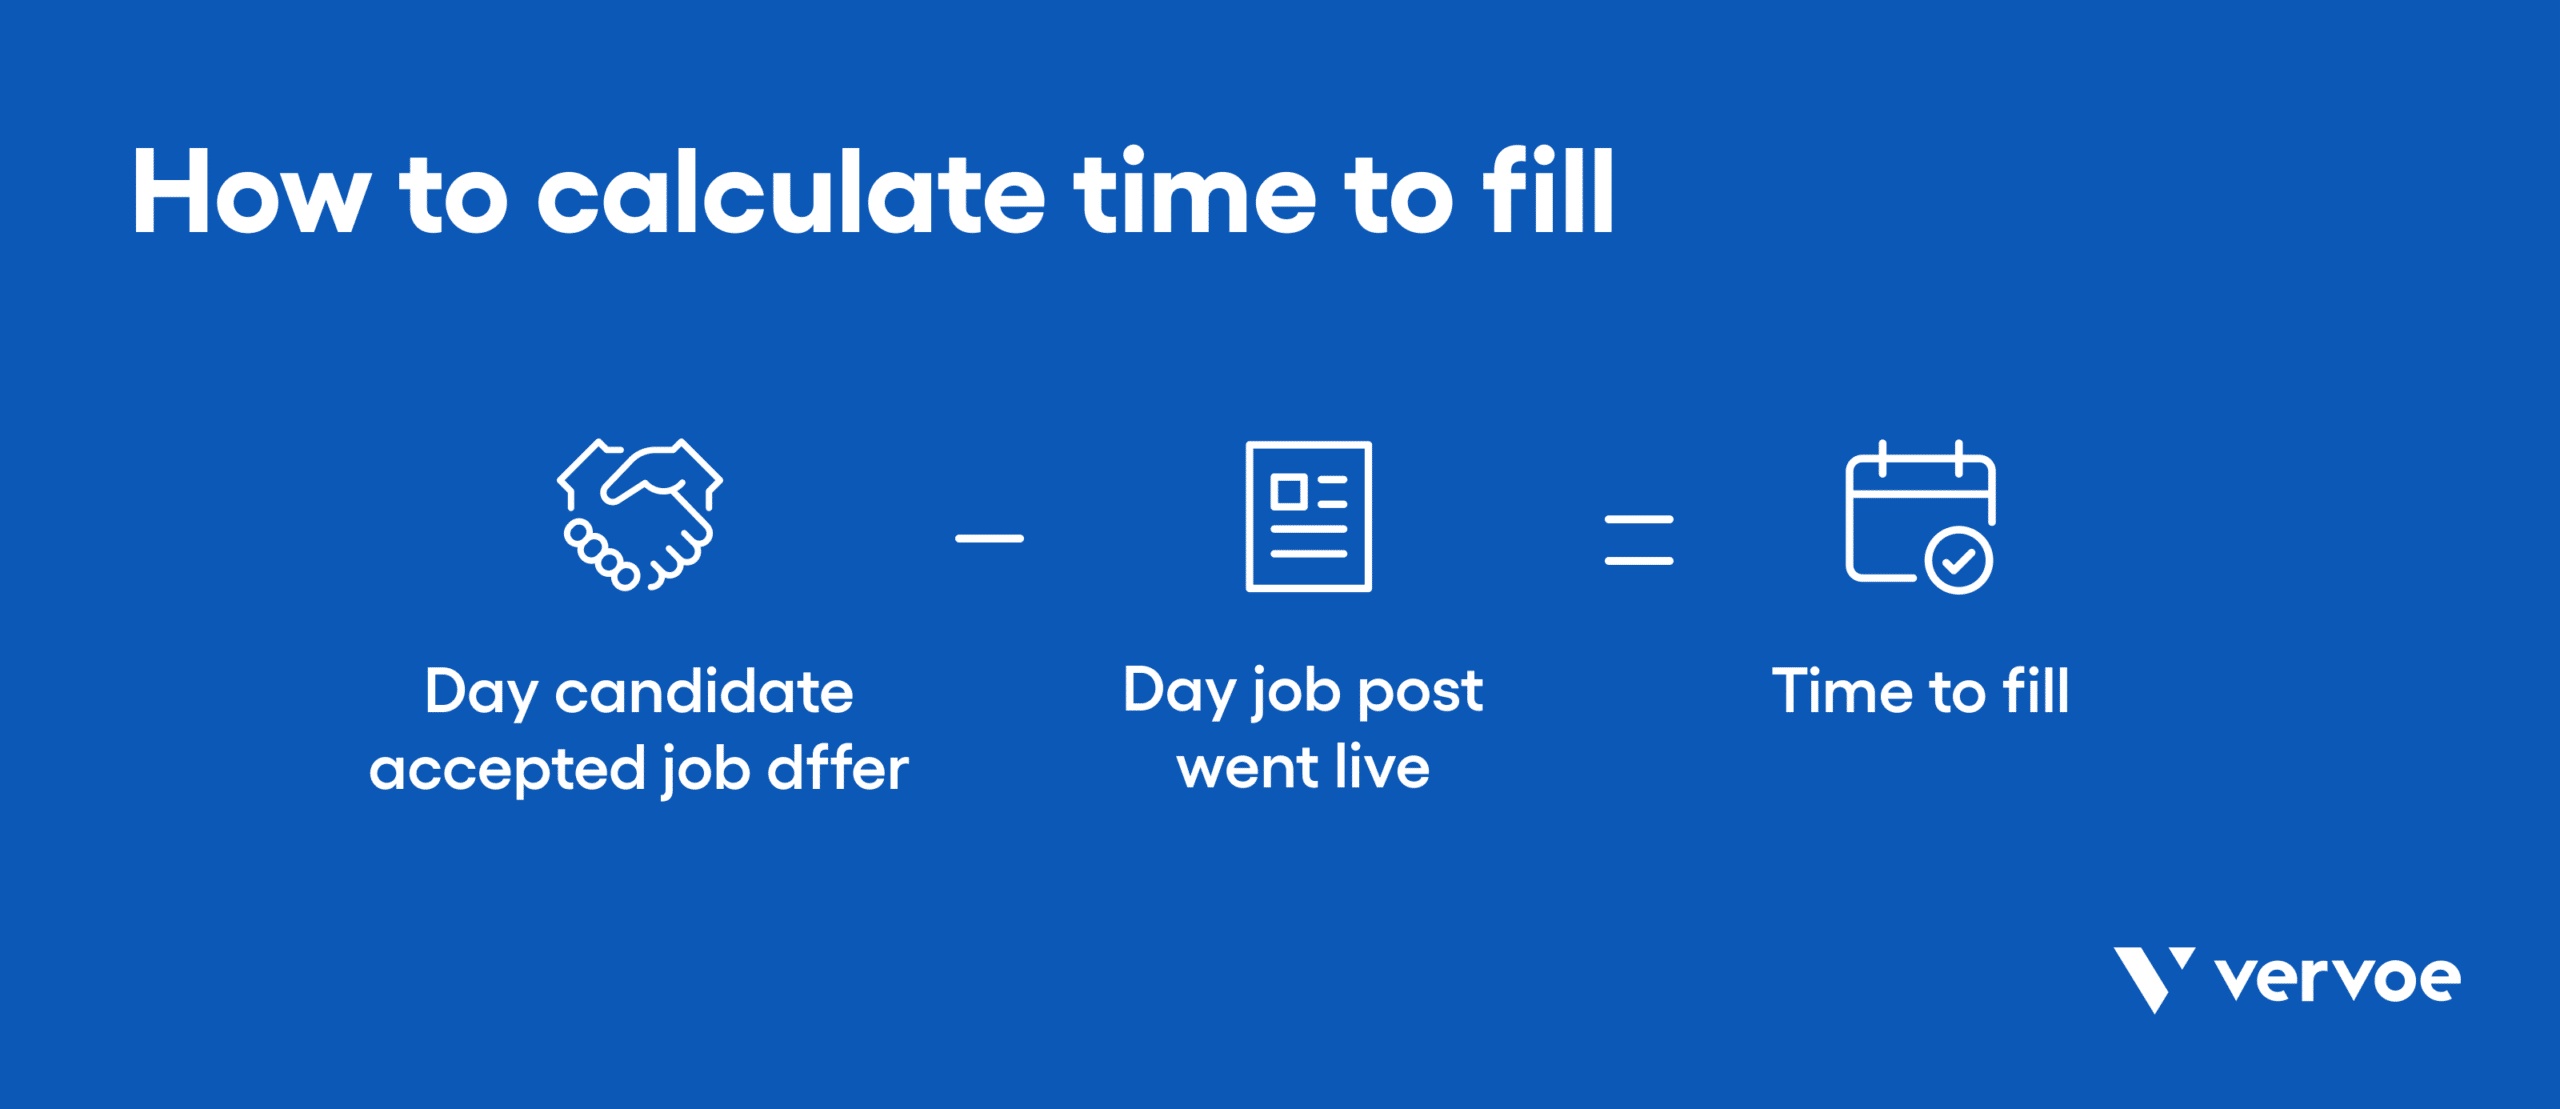 Infographic showing how to calculate time to fill